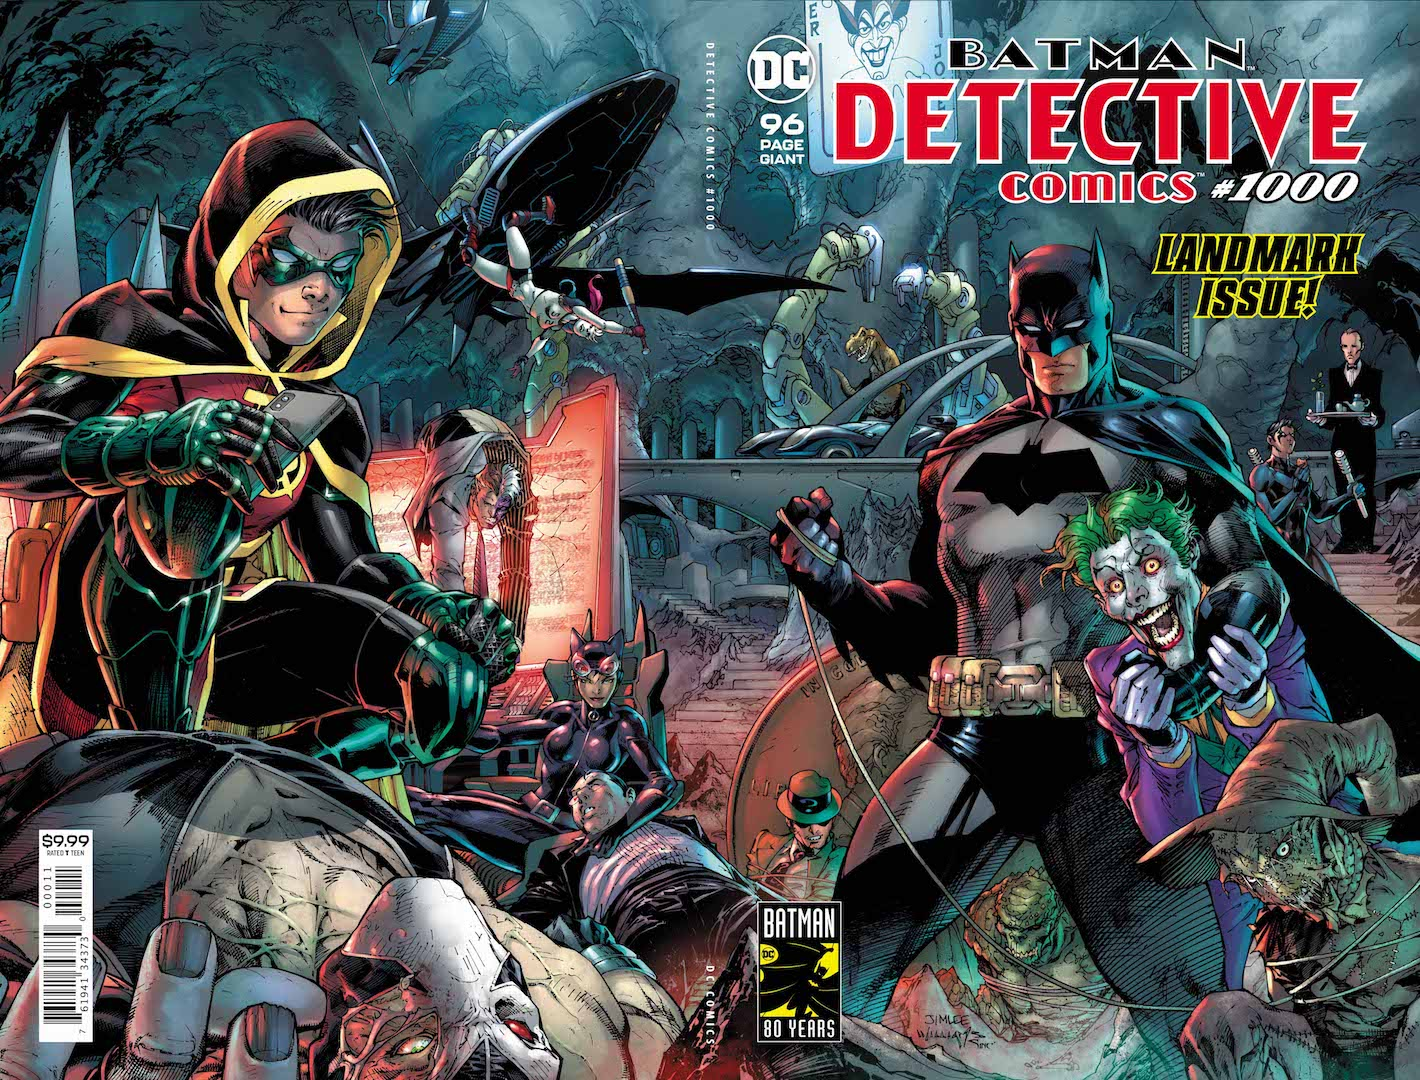 After 80 years, it's here—the 1,000th issue of DETECTIVE COMICS, the title that literally defines DC!